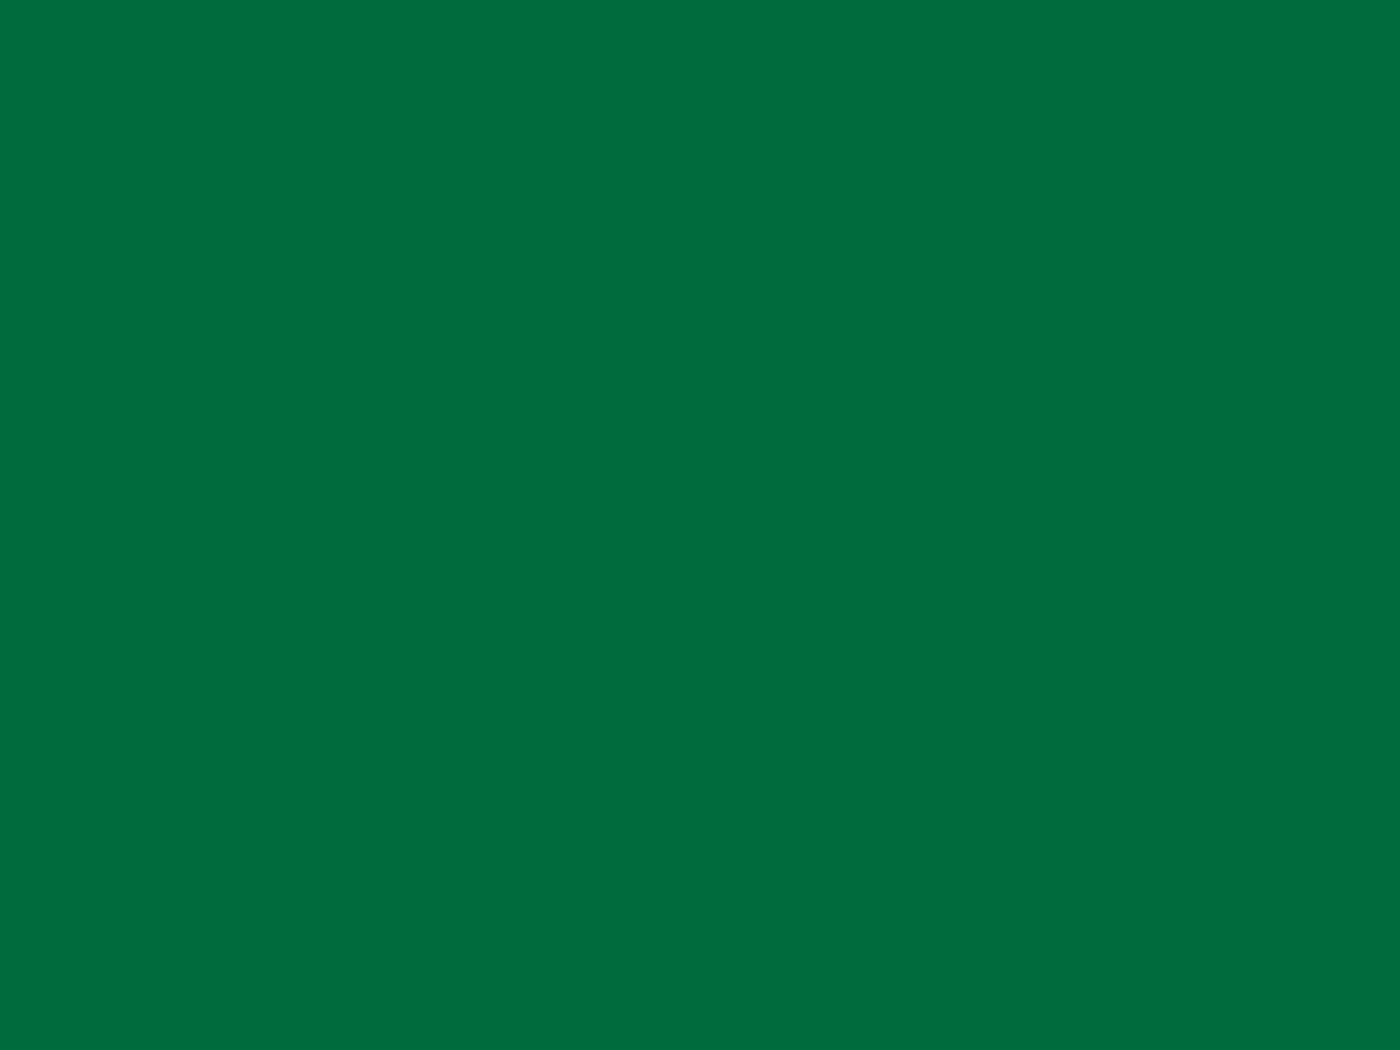 1400x1050 Cadmium Green Solid Color Background